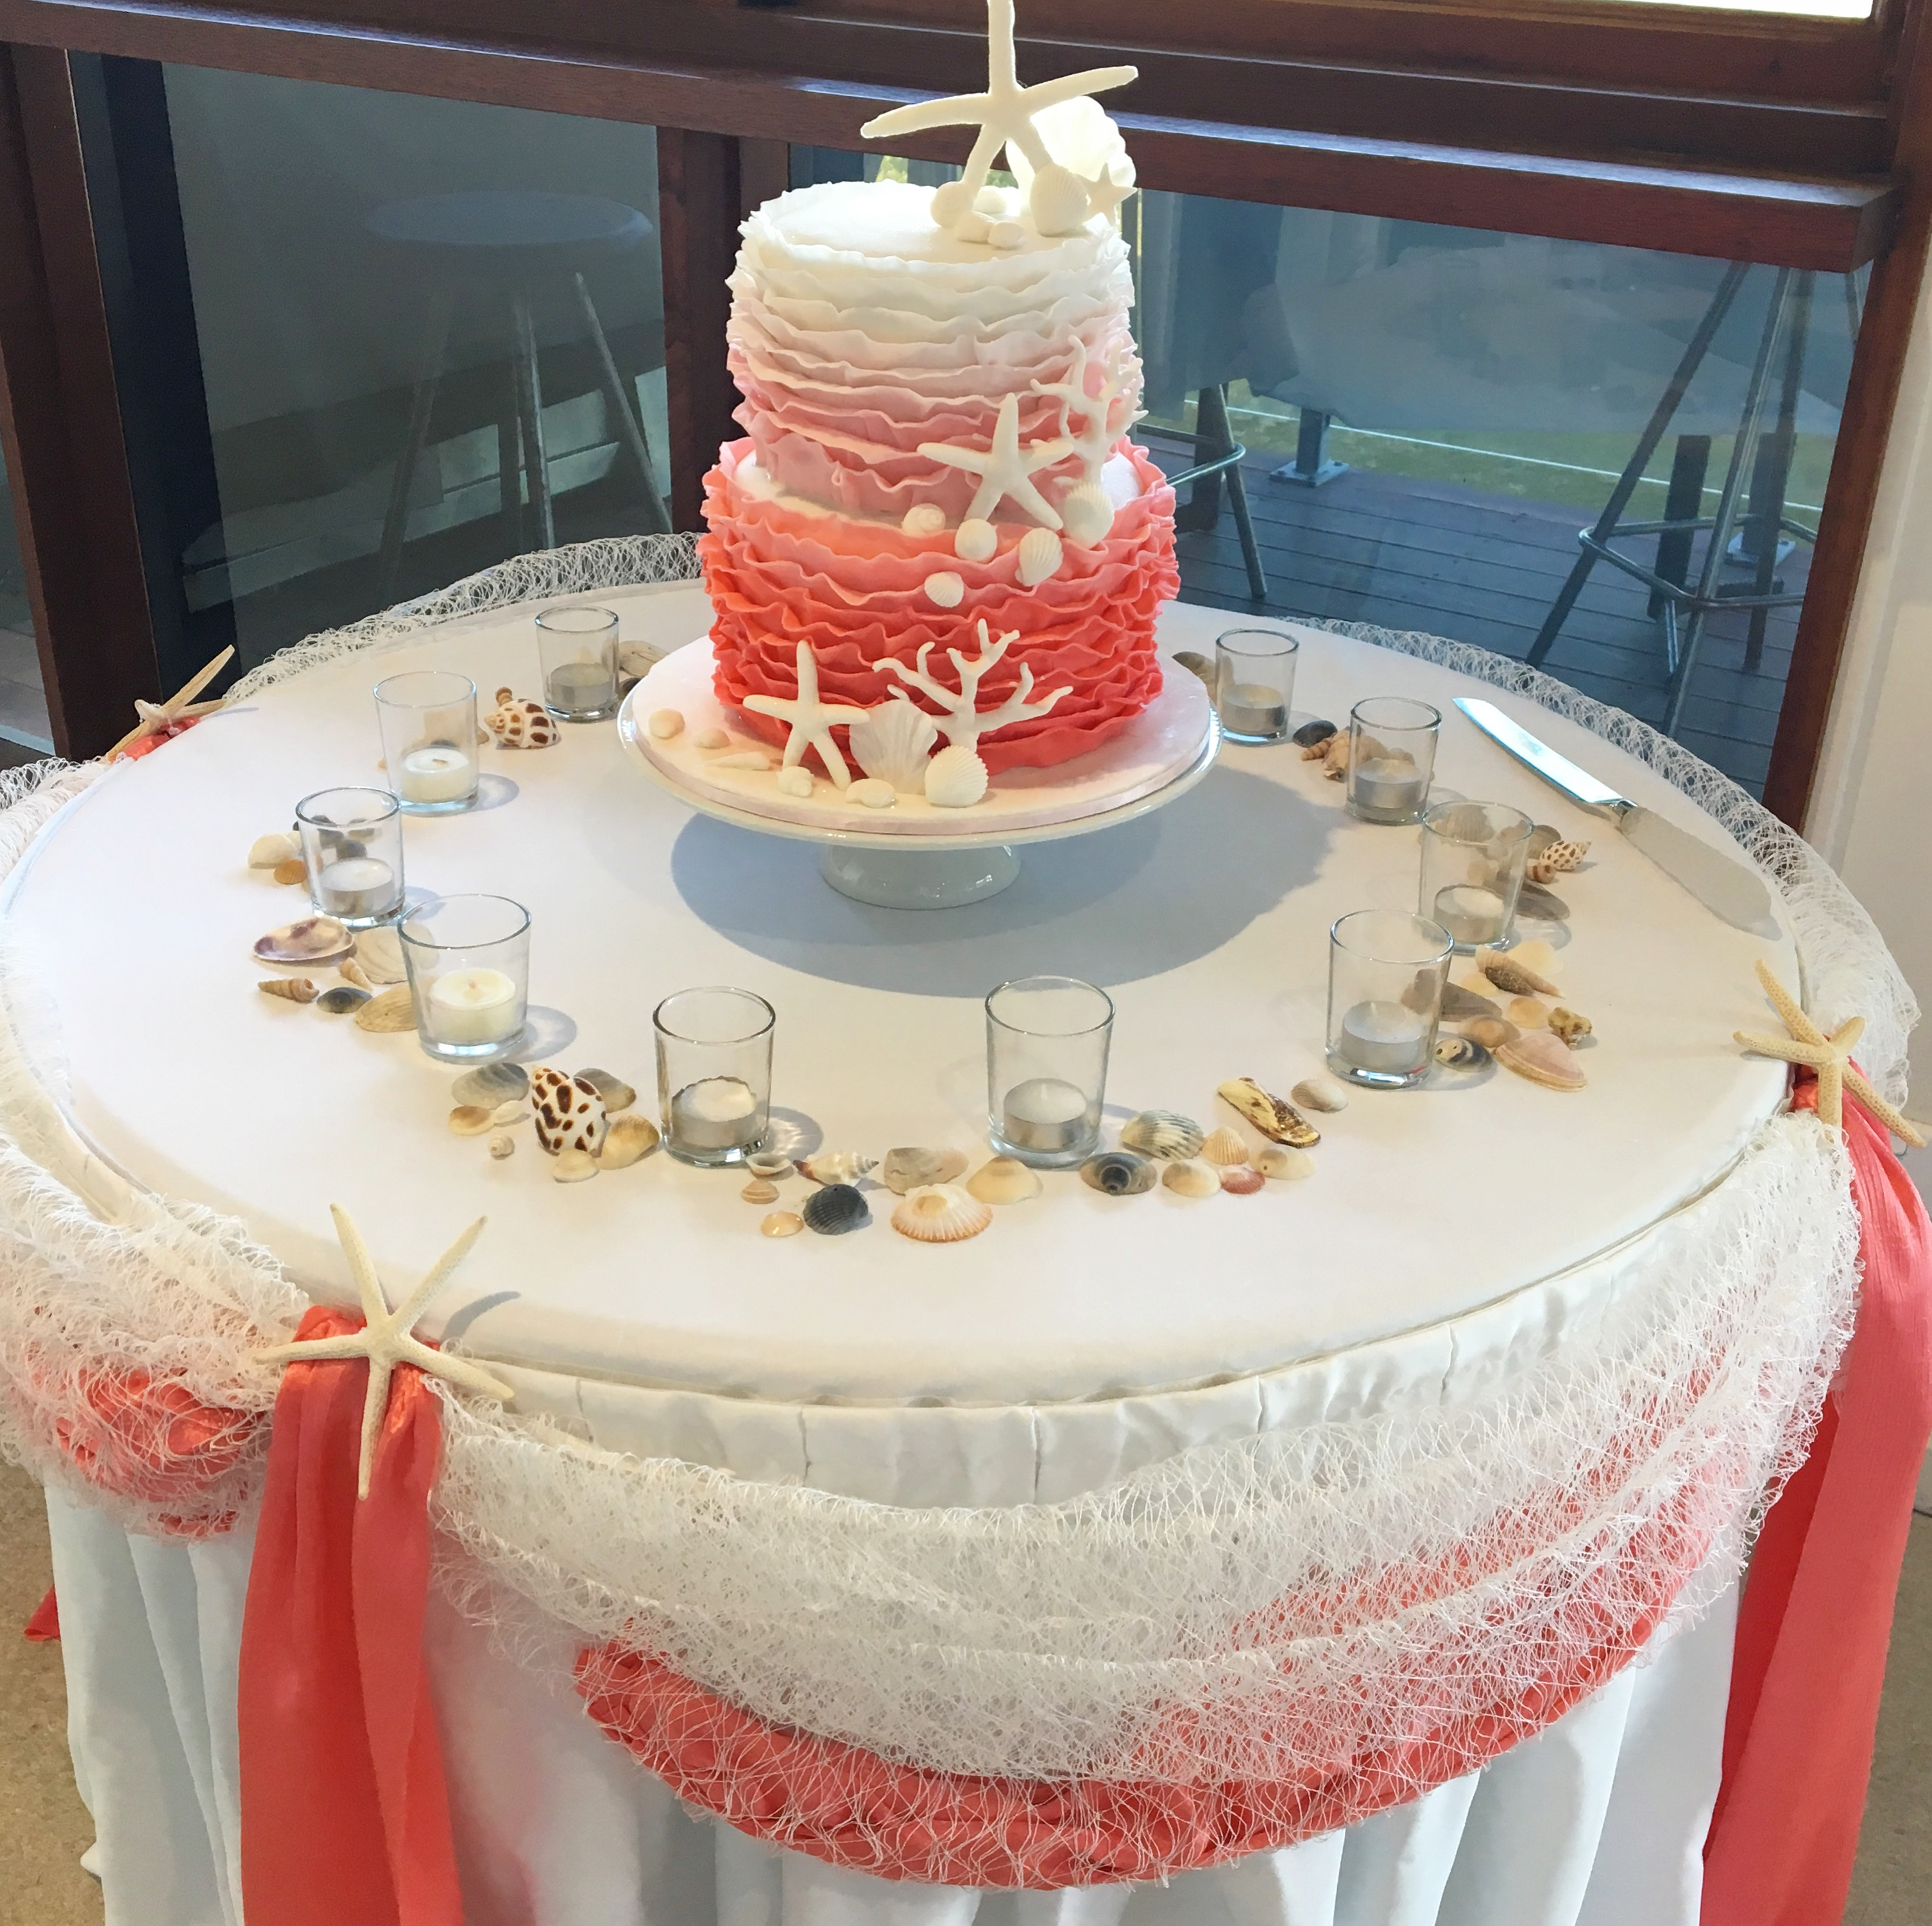 wedding_cake_coral_colour_strfish_shells.JPG